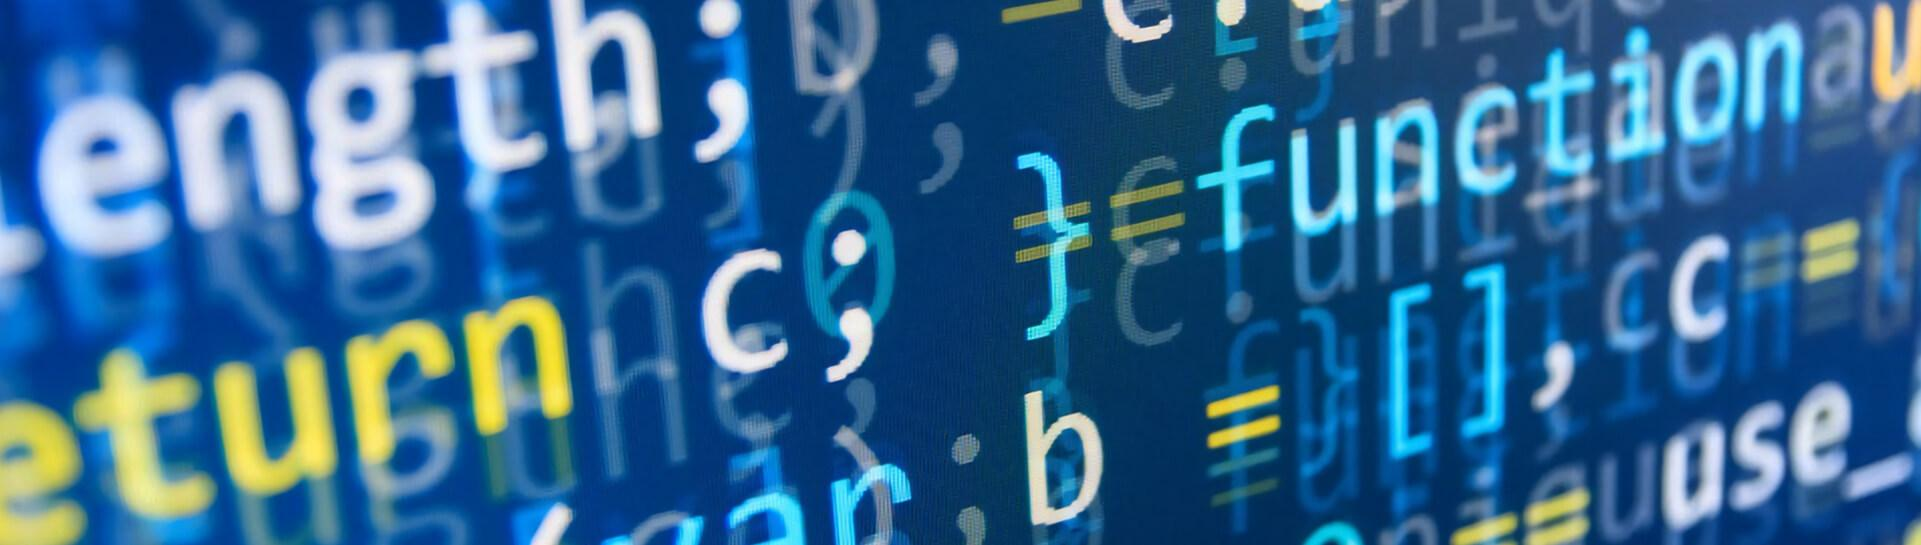 A close-up of code on a computer screen representing cryptography techniques taught by the Tulane School of Professional Advancement in New Orleans, LA